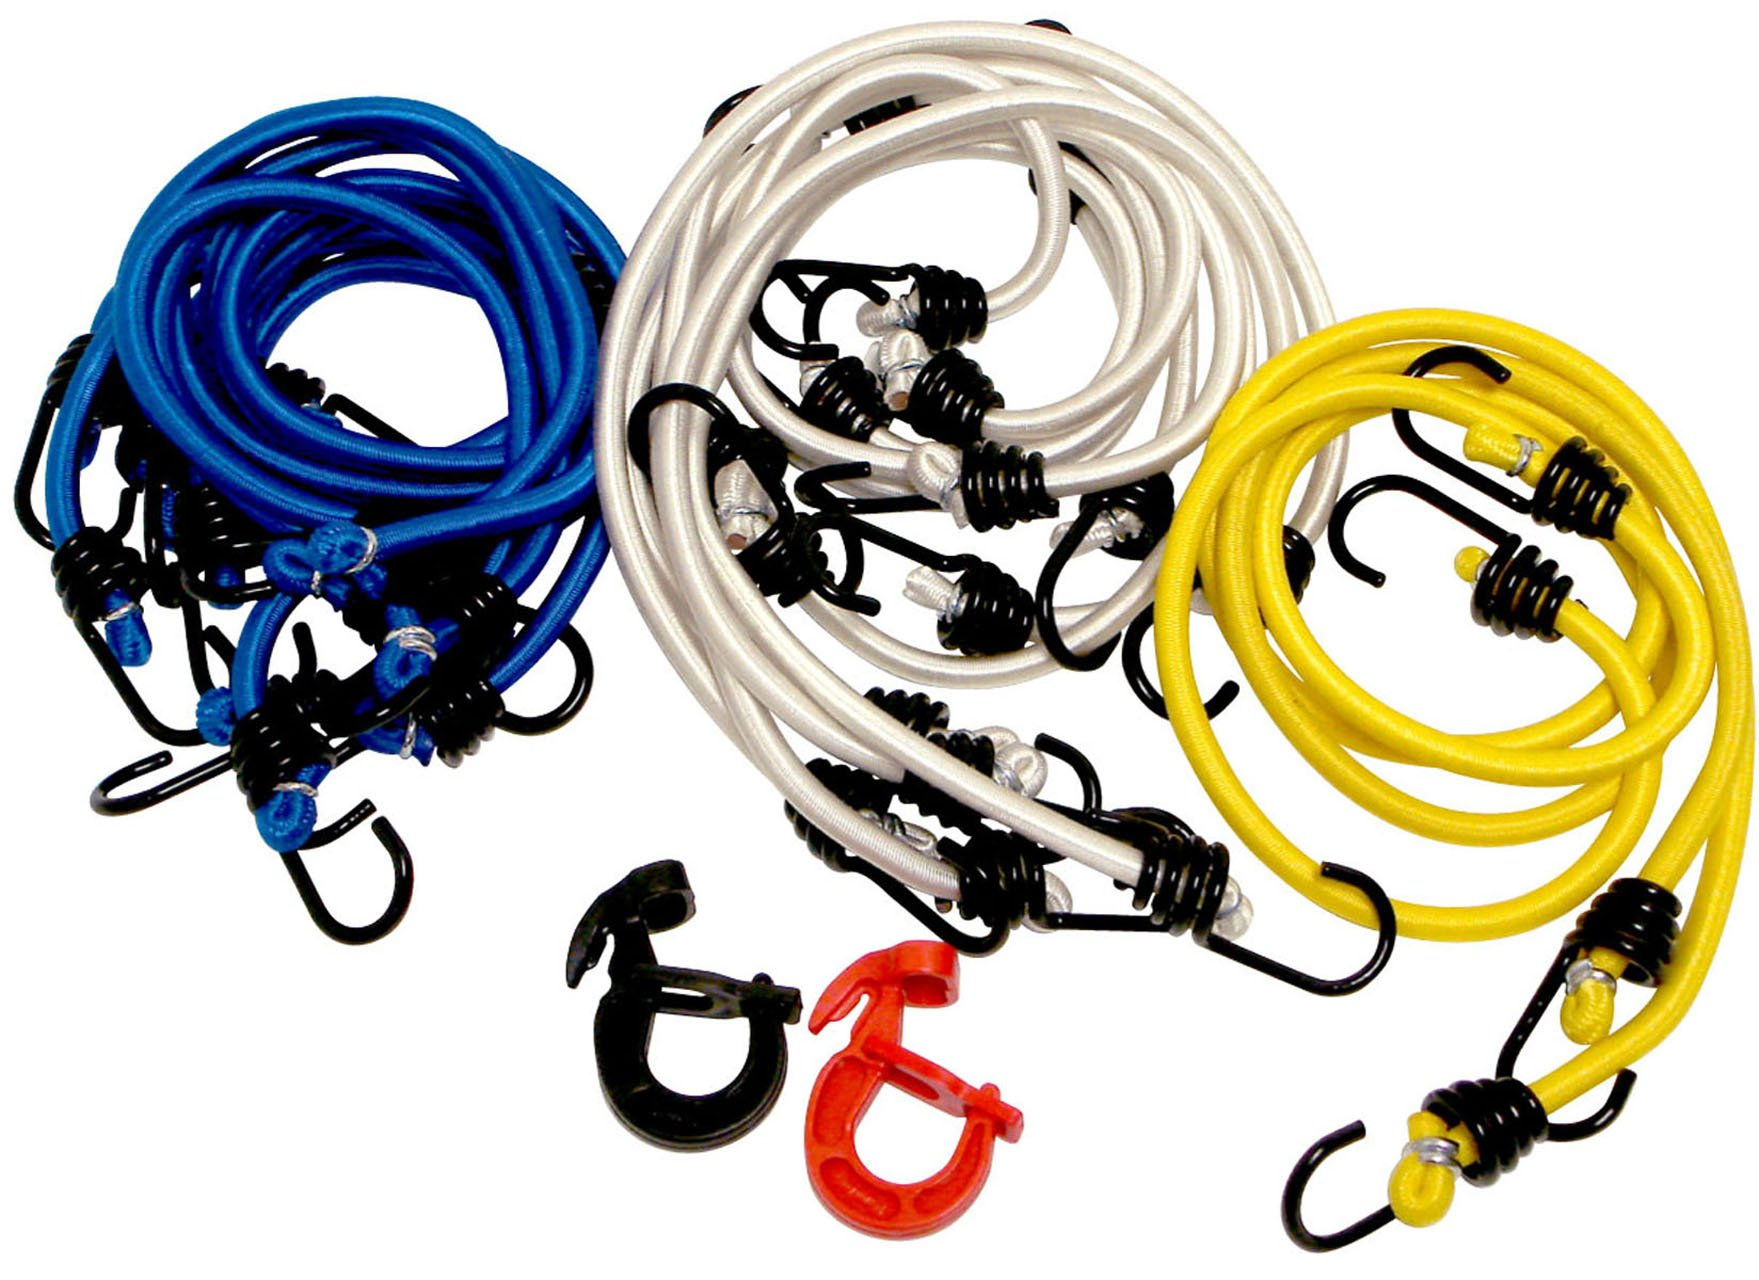 attwood 11712-7 18 Piece Bungee Cord Pack